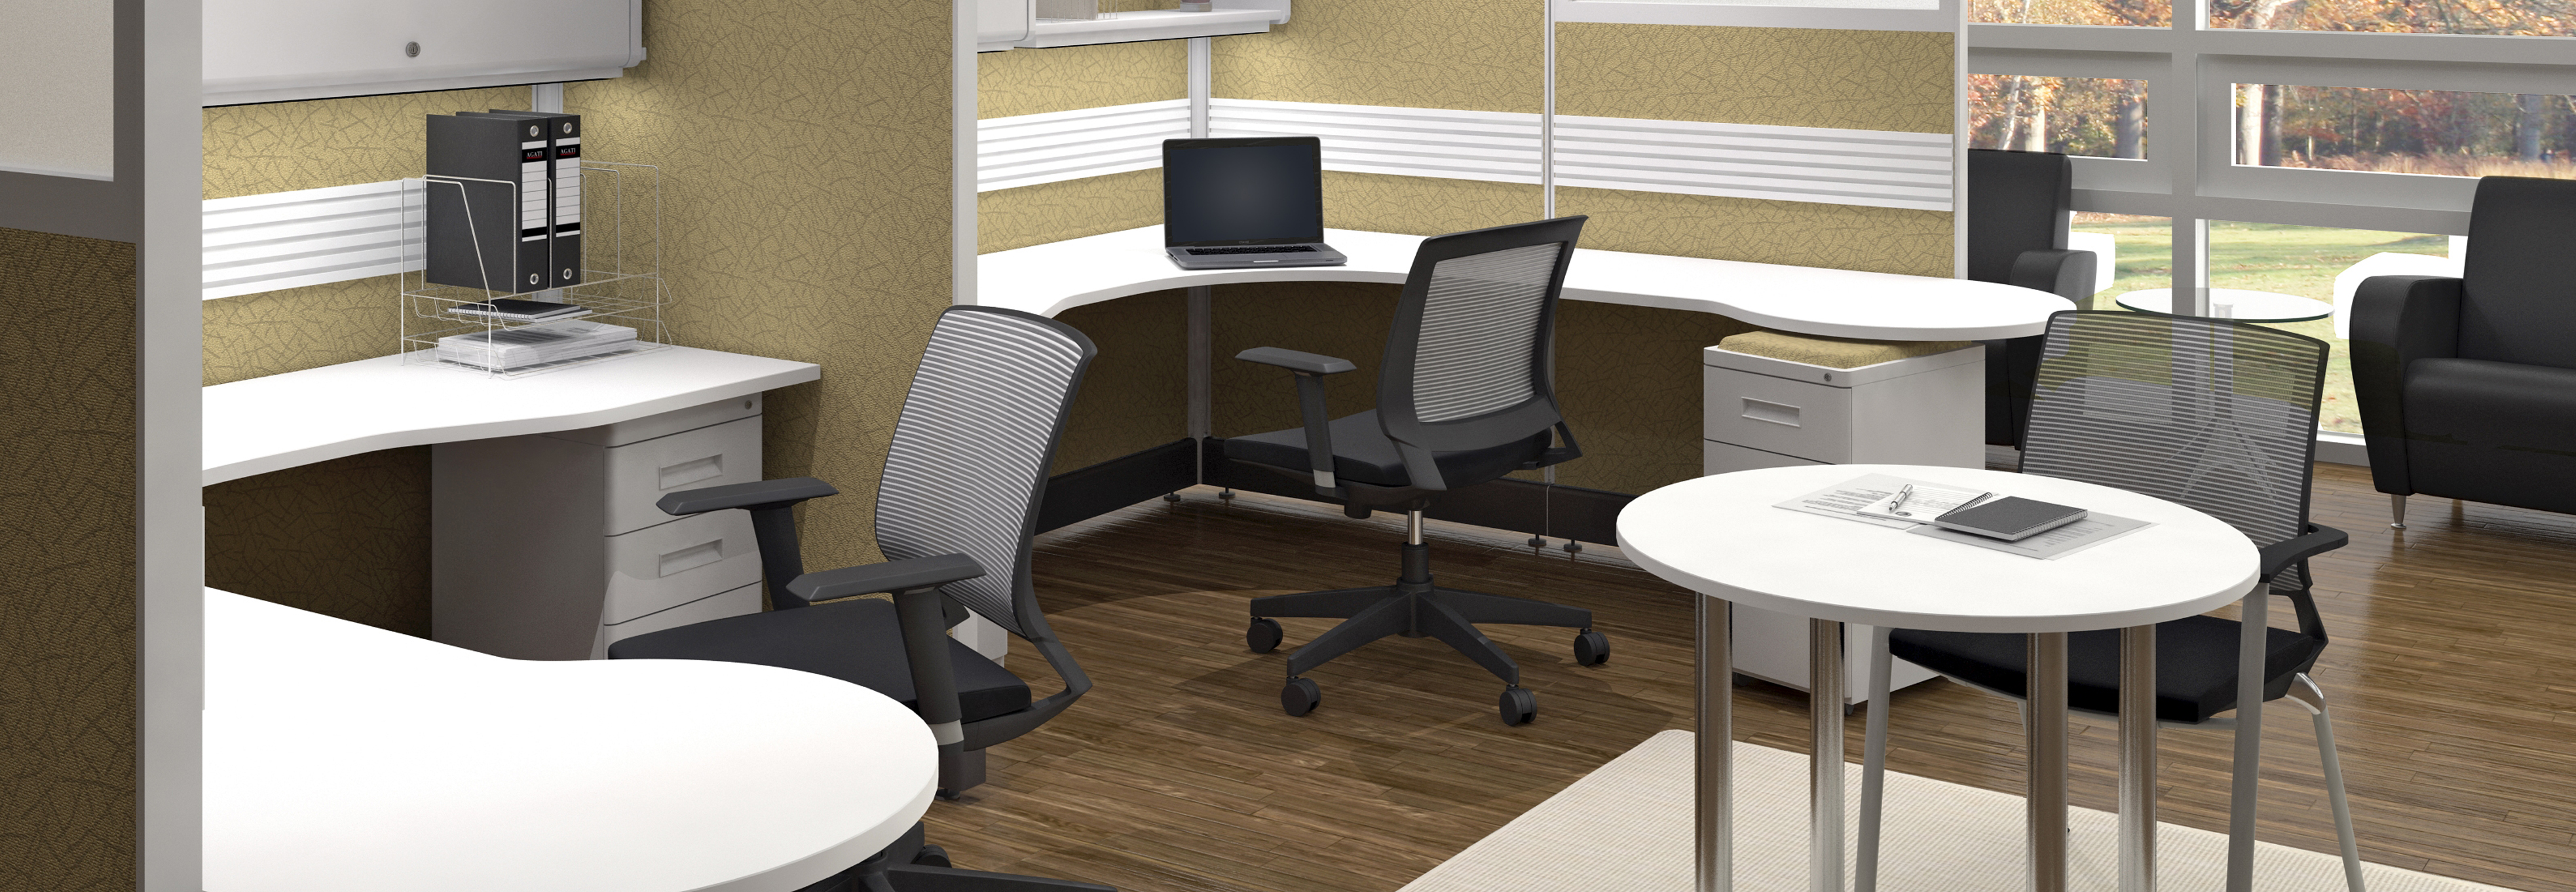 Office furniture now austin tx blog adaptable workspaces for Furniture now